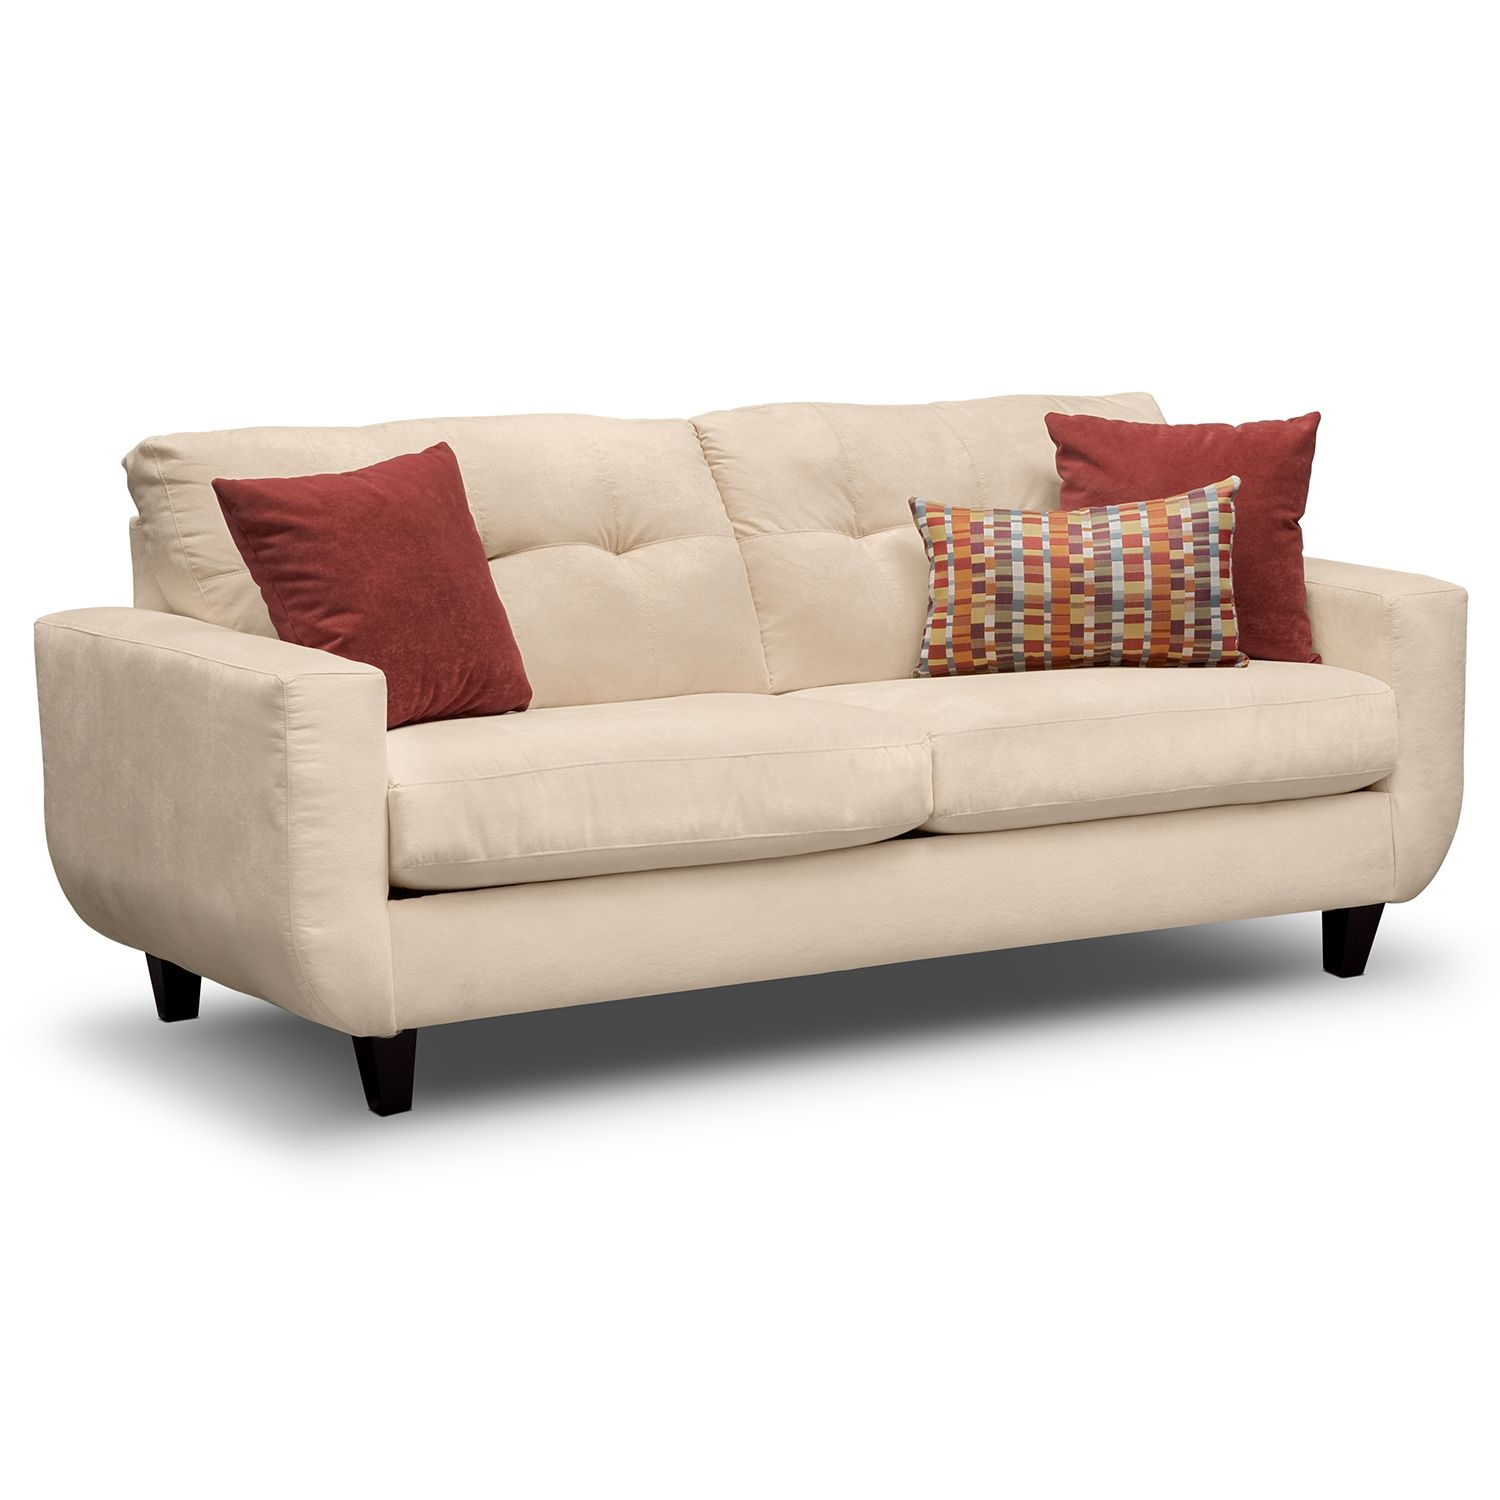 West Village Cream Sofa Value City Furniture